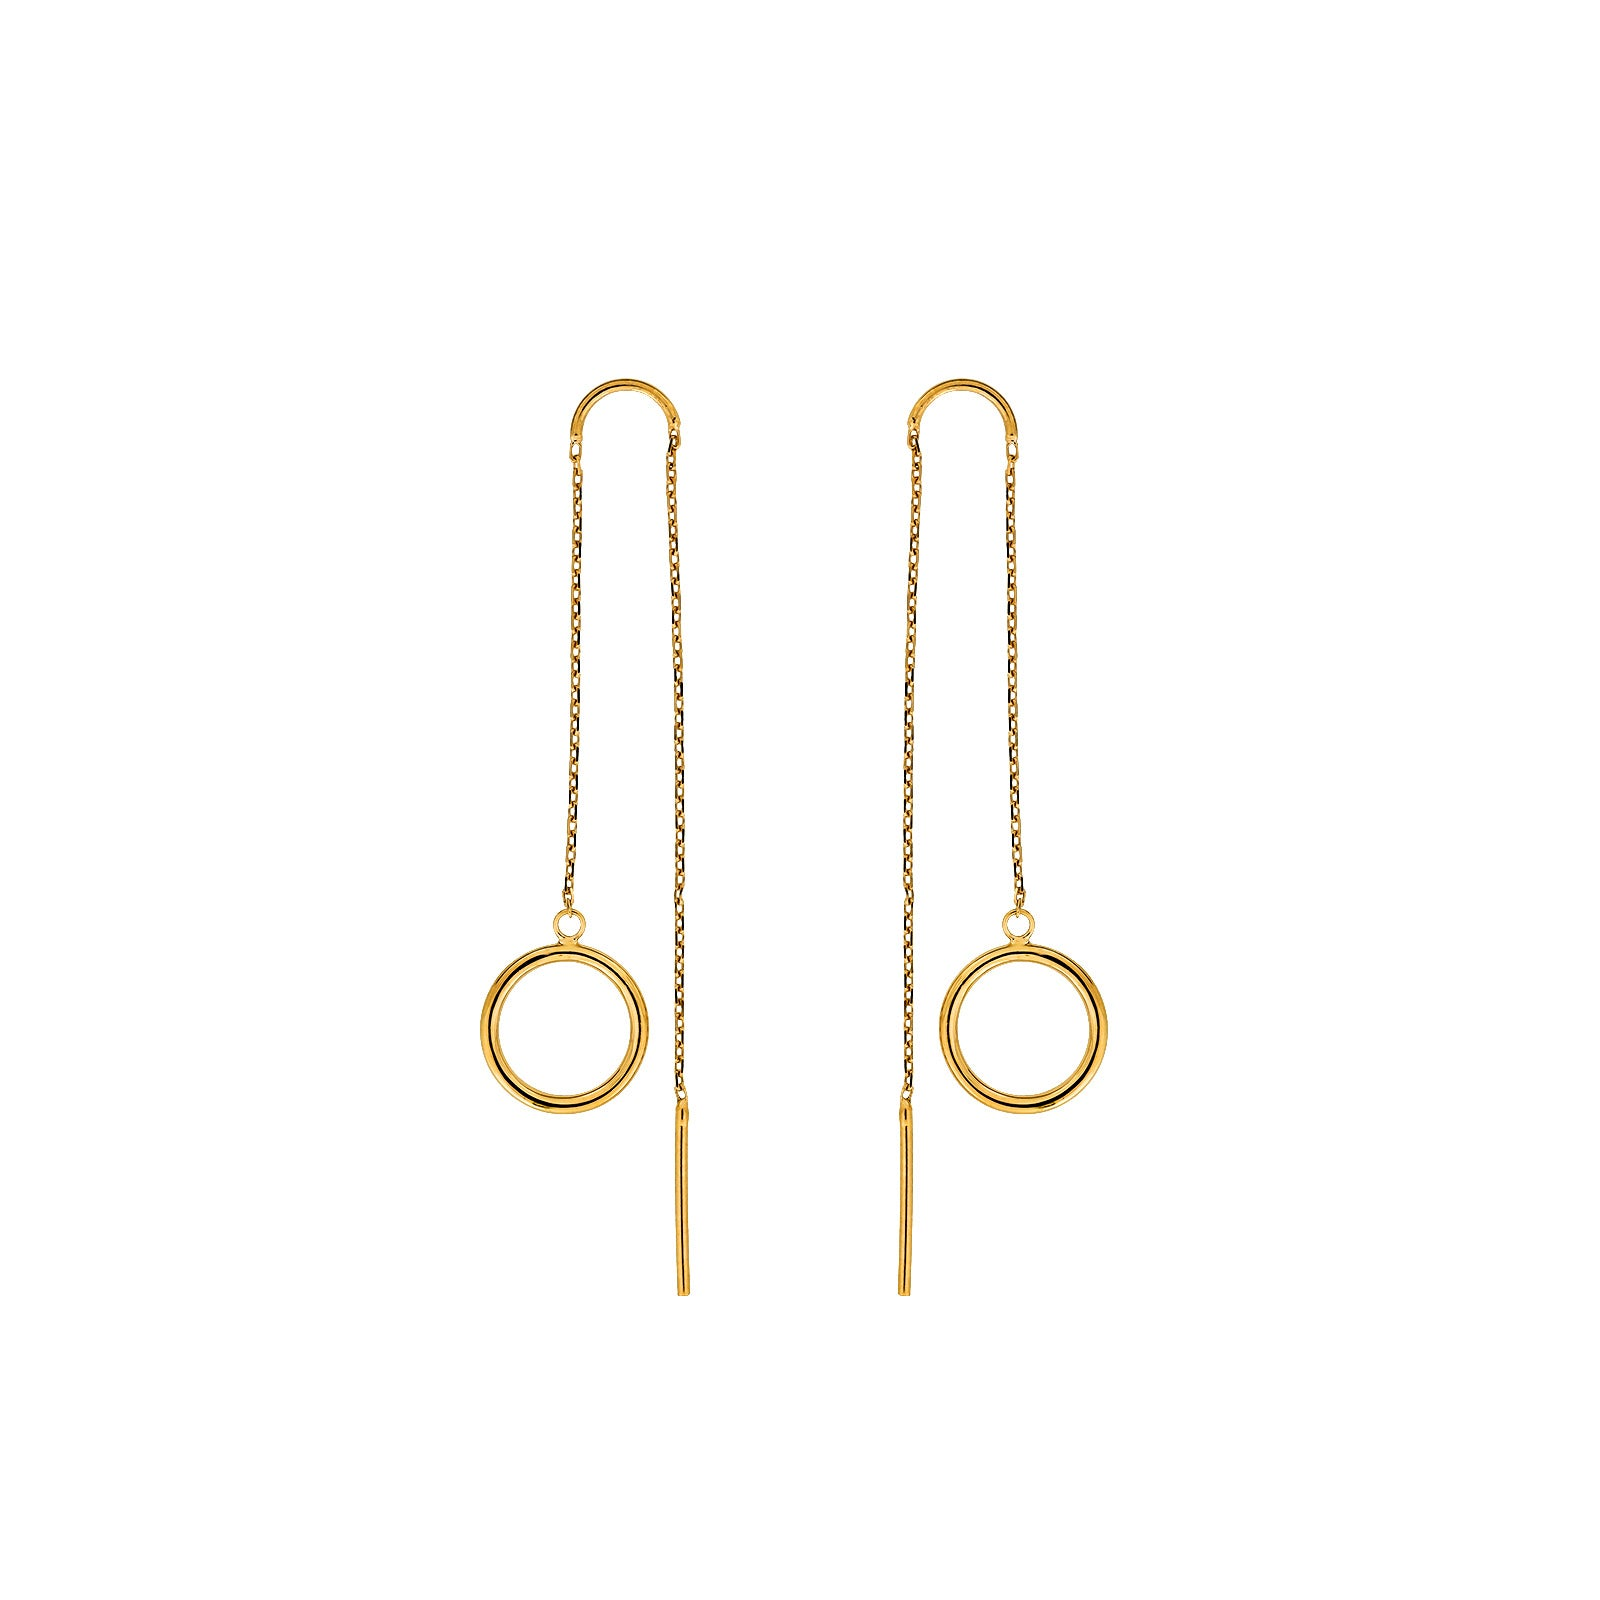 9ct Gold Open Circle Threader Earrings